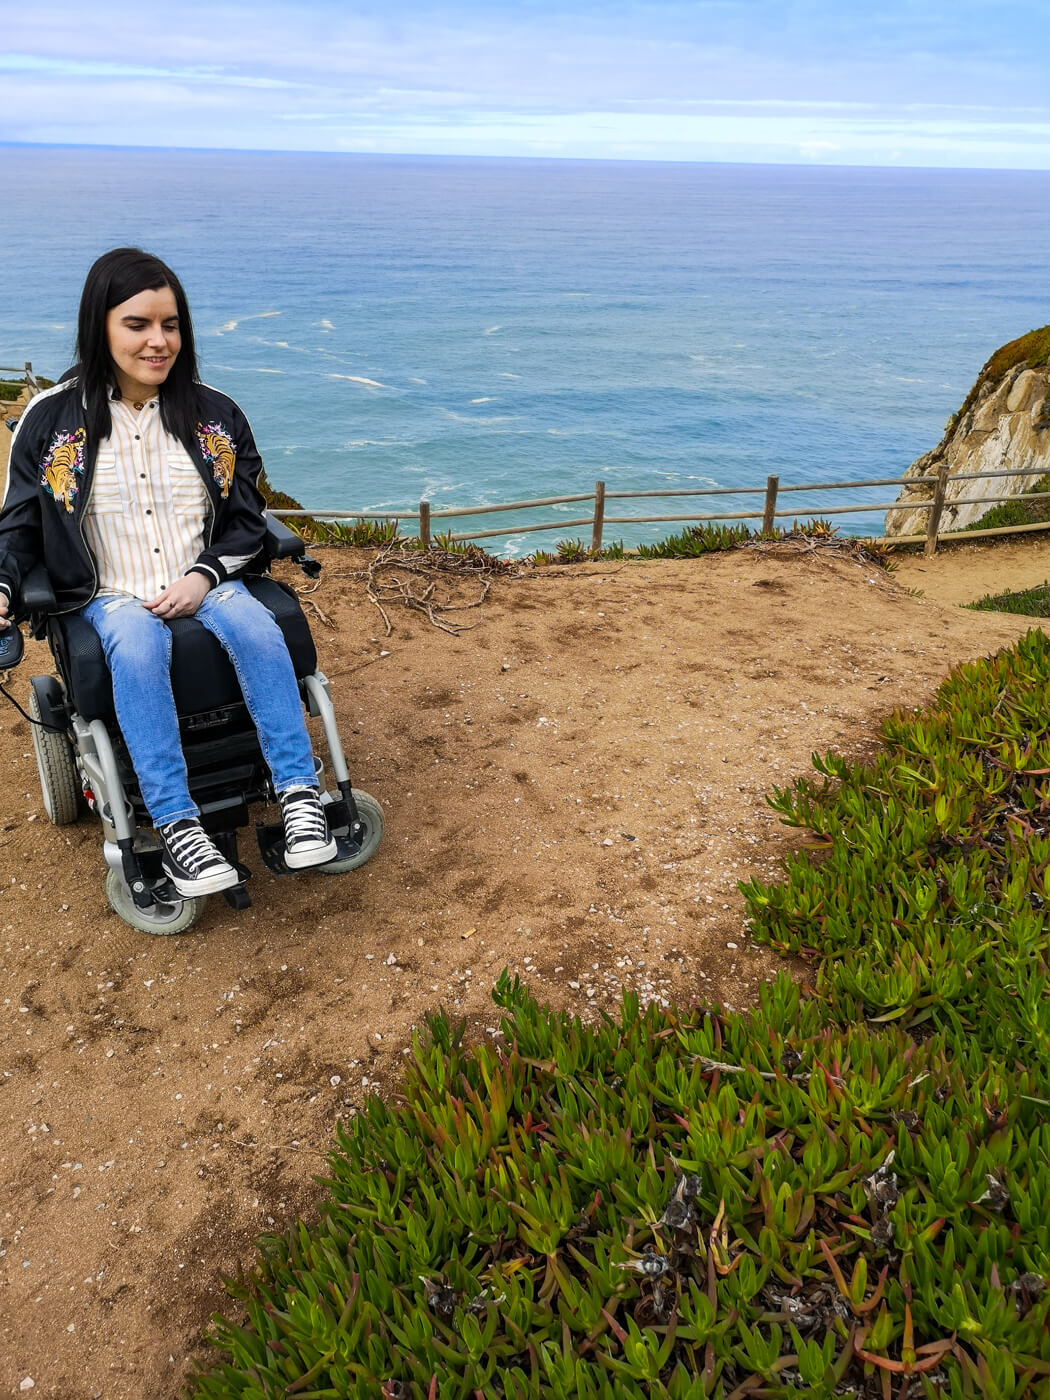 Emma sitting in her power wheelchair facing the camera. She is wearing blue skinny jeans, black converse shoes, a white and yellow striped shirt and black satin jacket with a tiger embroidery design. Emma is smiling and looking down with the view of the ocean behind her at Cabo da Roca.